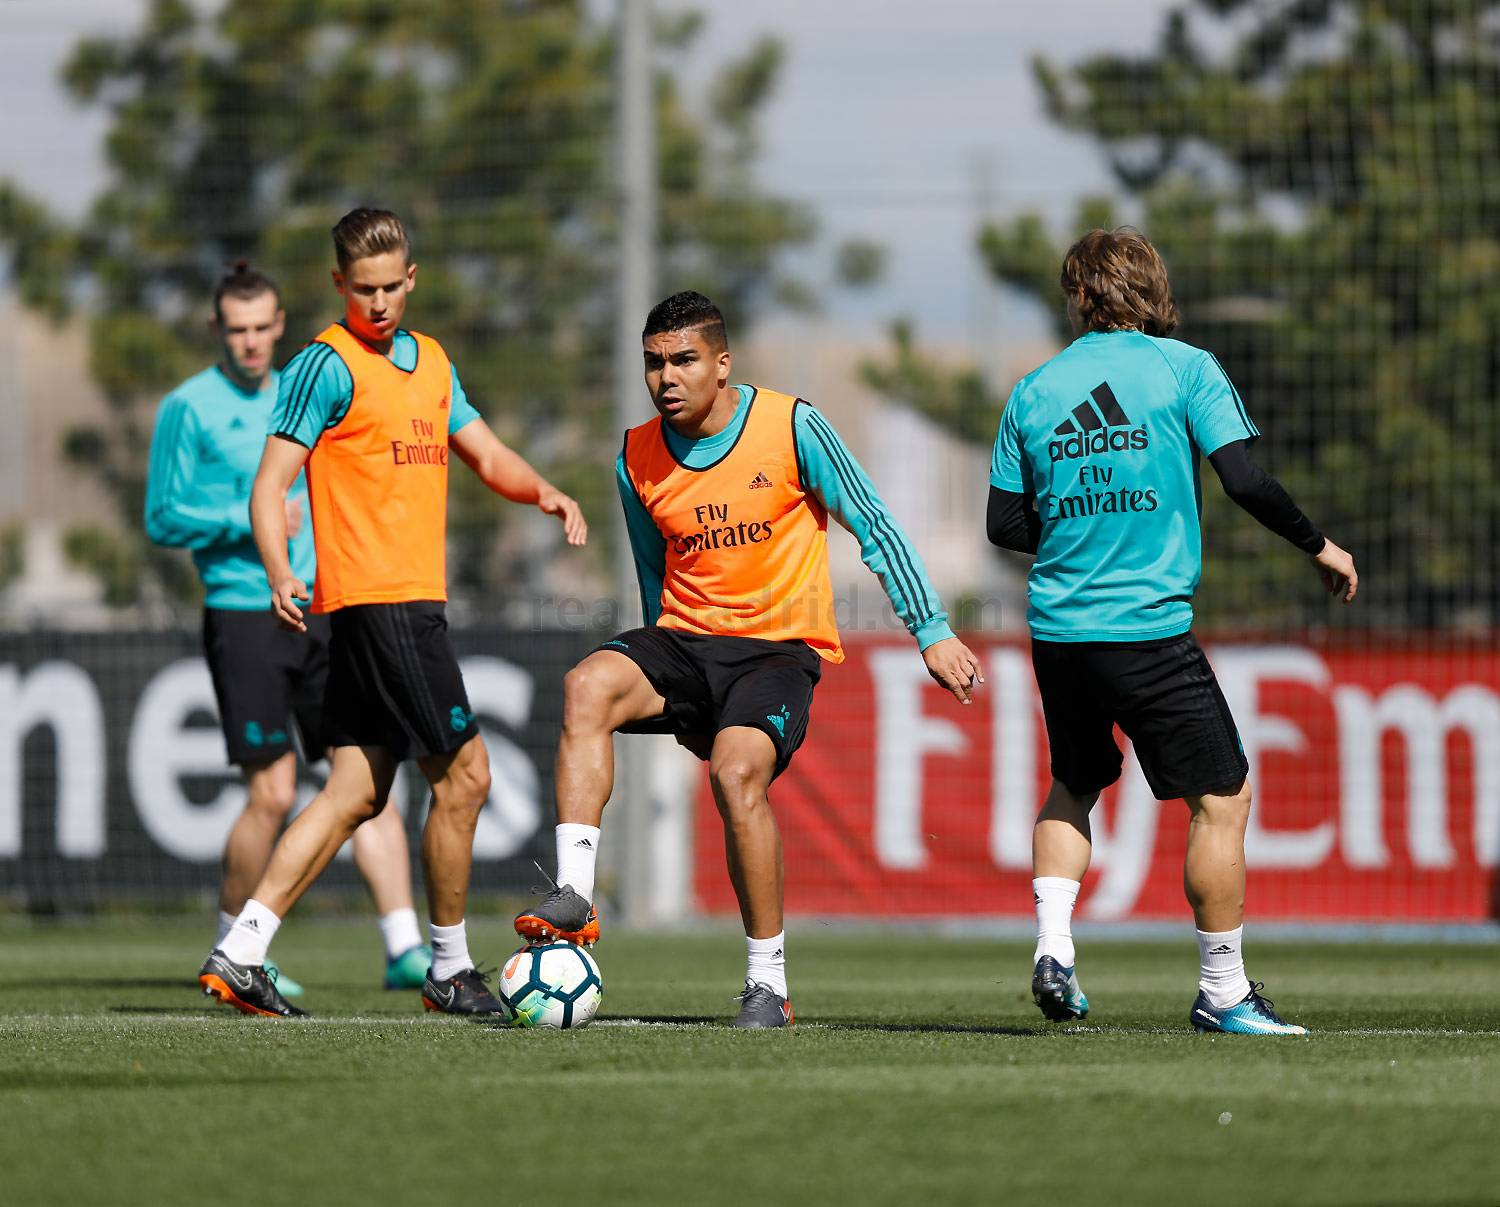 Real Madrid - Entrenamiento del Real Madrid - 14-04-2018